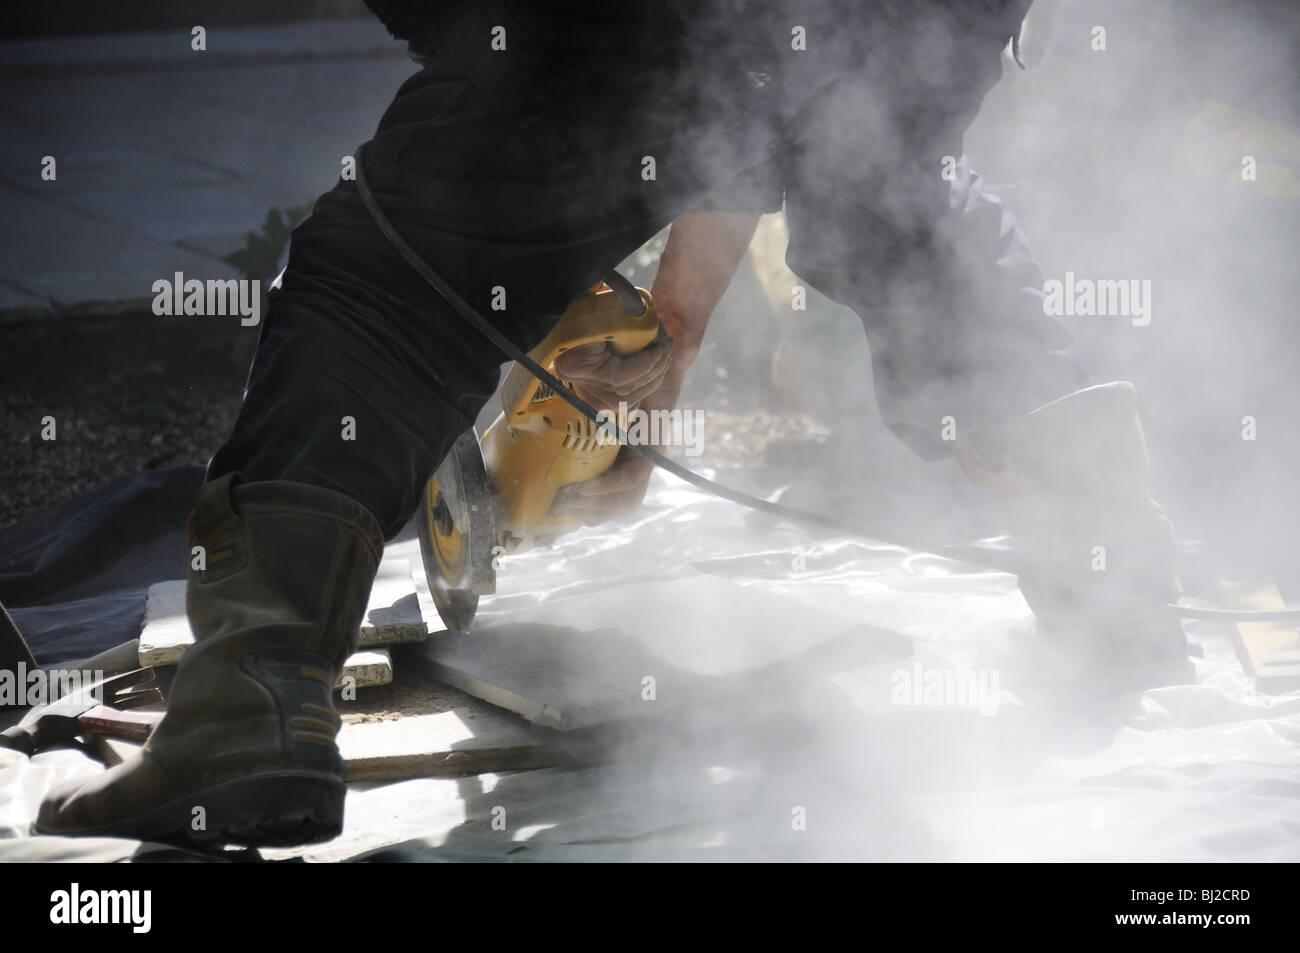 Workman cutting paving slabs for terrace with angle grinder - Stock Image